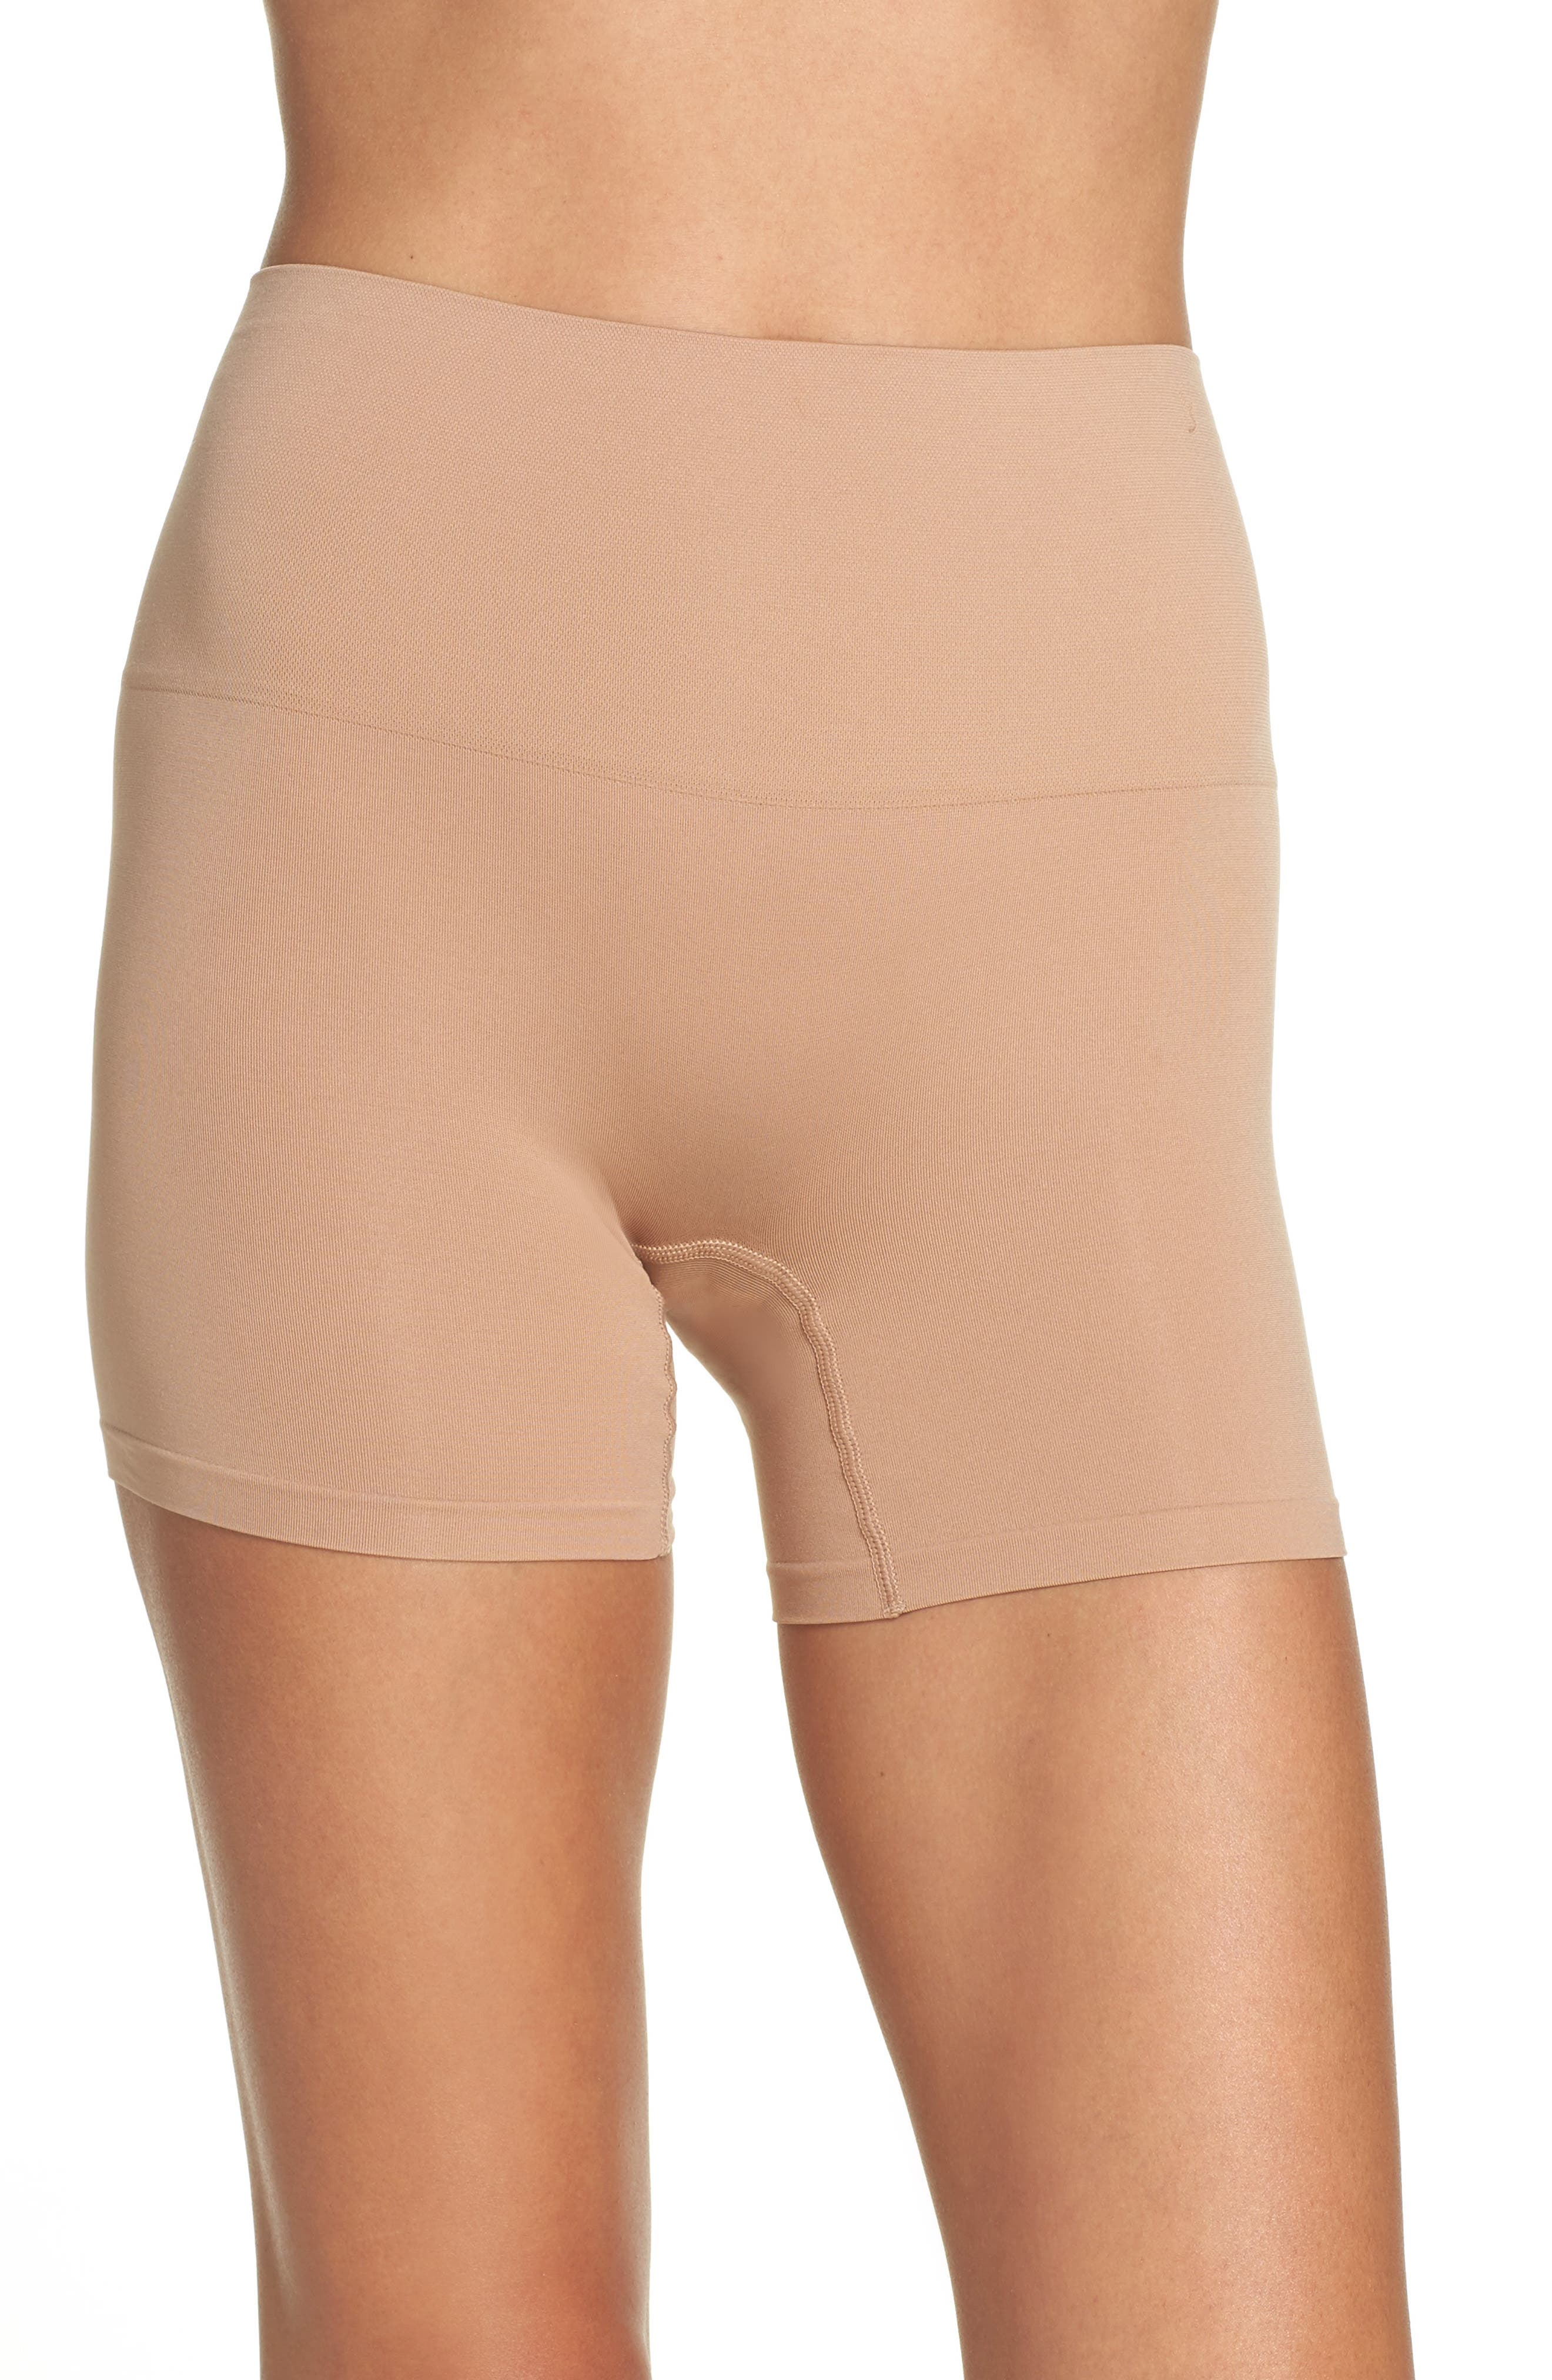 YUMMIE Ultralight Seamless Shaping Shorts, Main, color, ALMOND